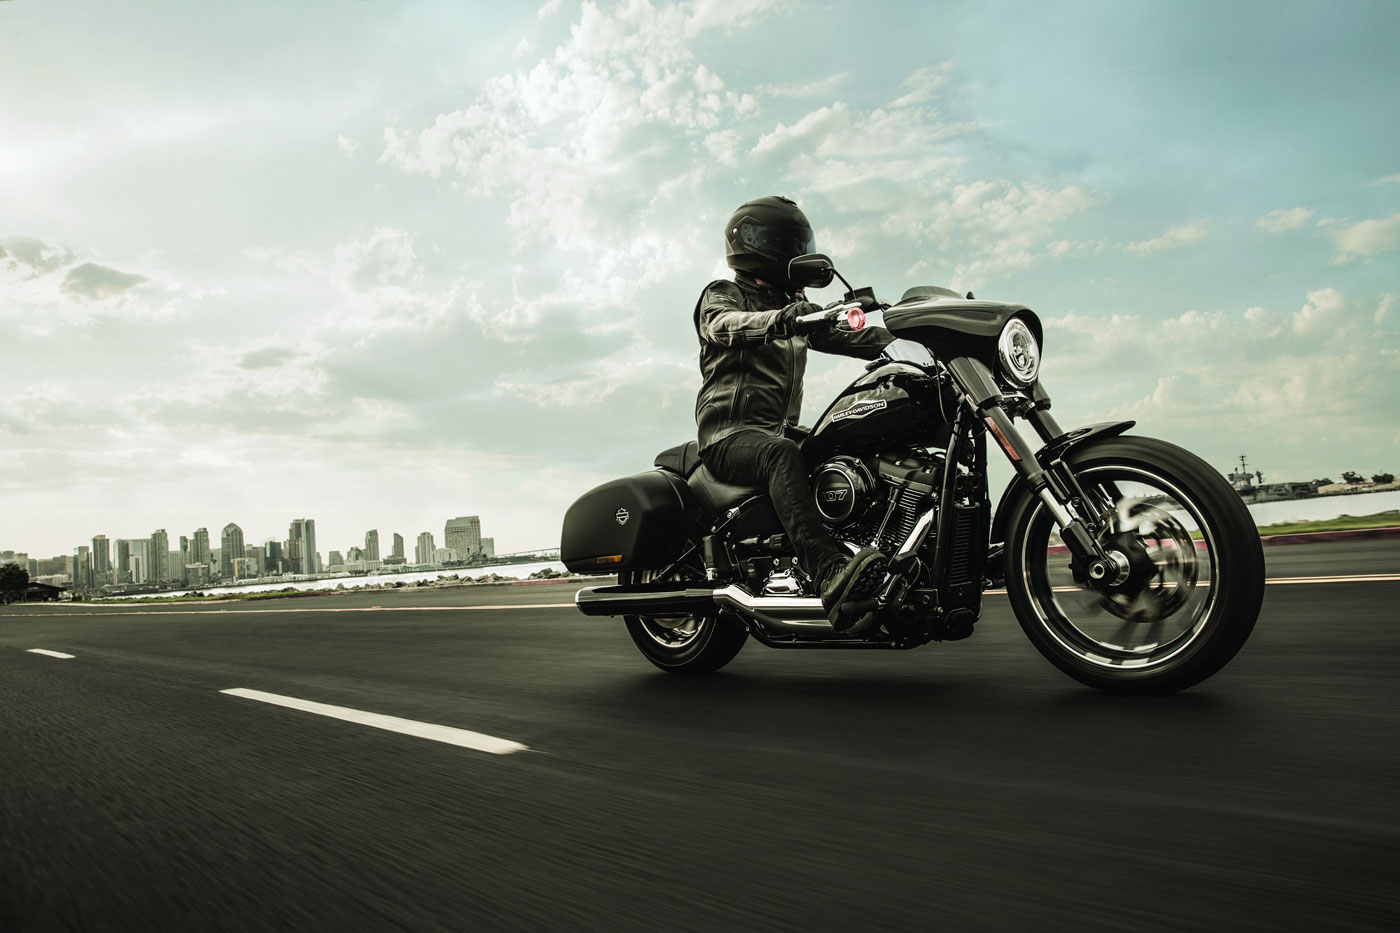 THE NEW HARLEY-DAVIDSON SPORT GLIDE